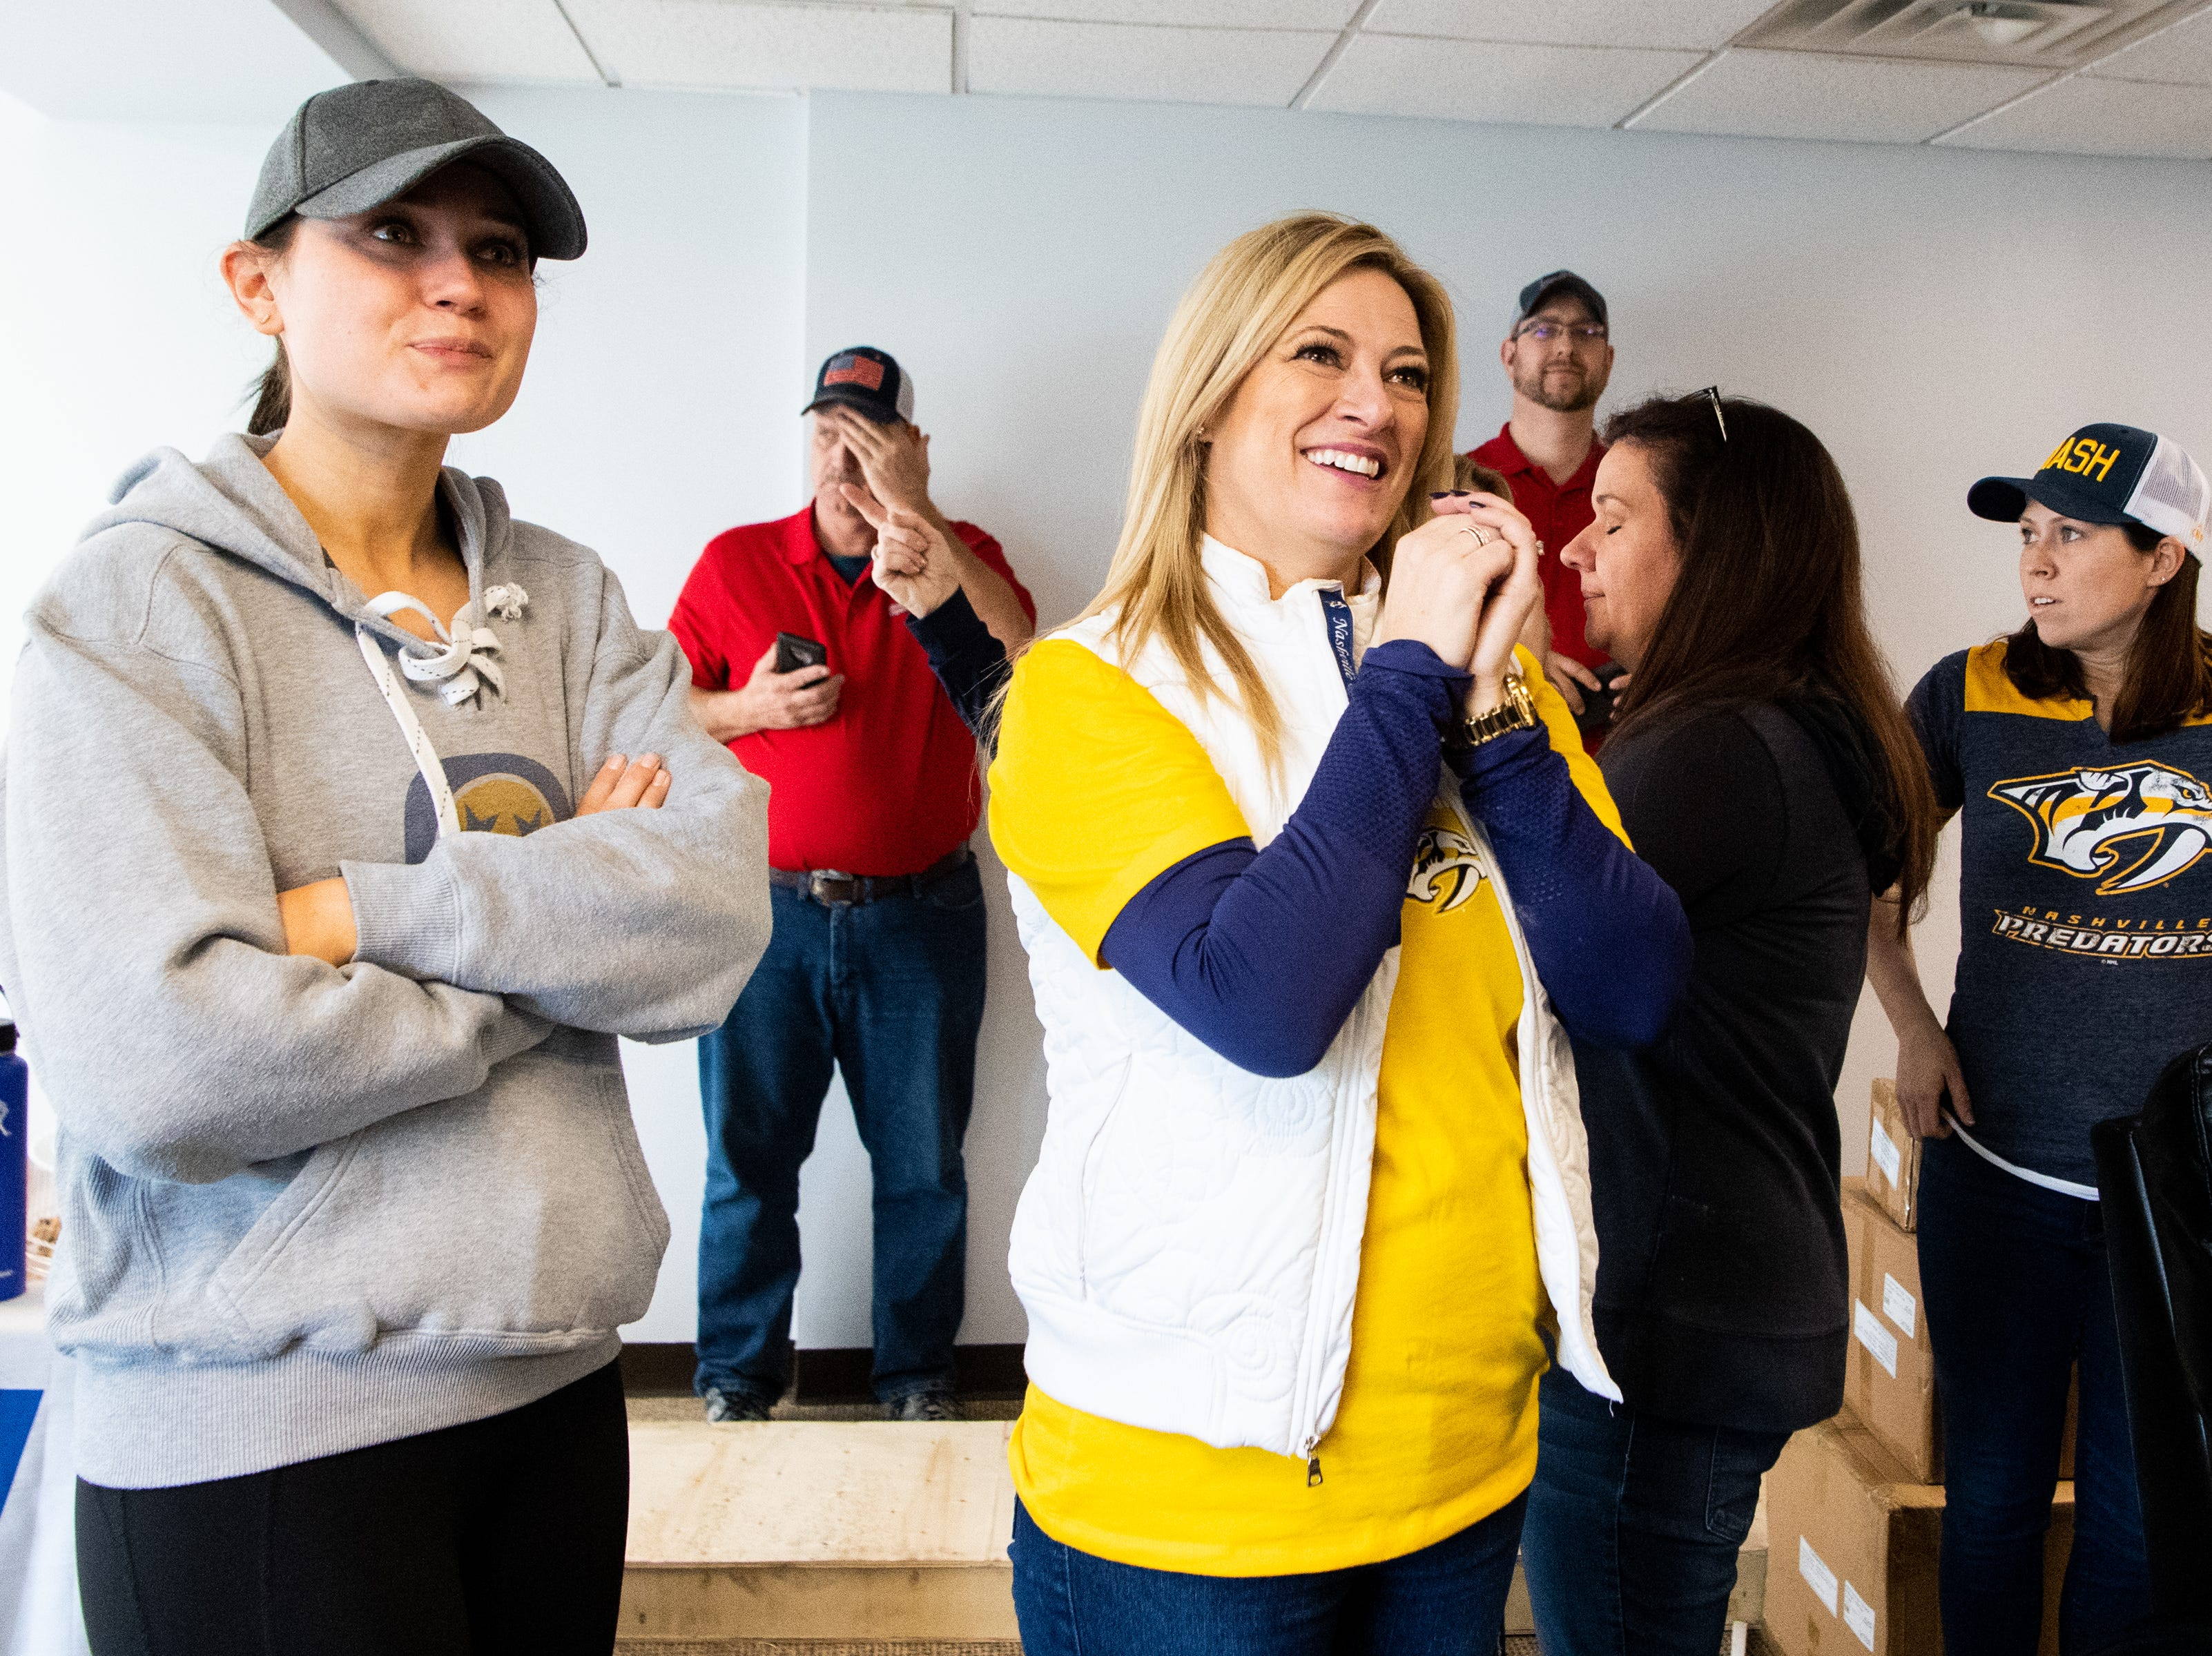 Kristen Laviolette and Kayla Price smile as they look at the new TV unit used in the makeover for the entertainment room at Memorial Foundation Hope Lodge as a project for the wives, girlfriends and fiancees of the Nashville Predators Tuesday, March 12, 2019, in Nashville, Tenn.